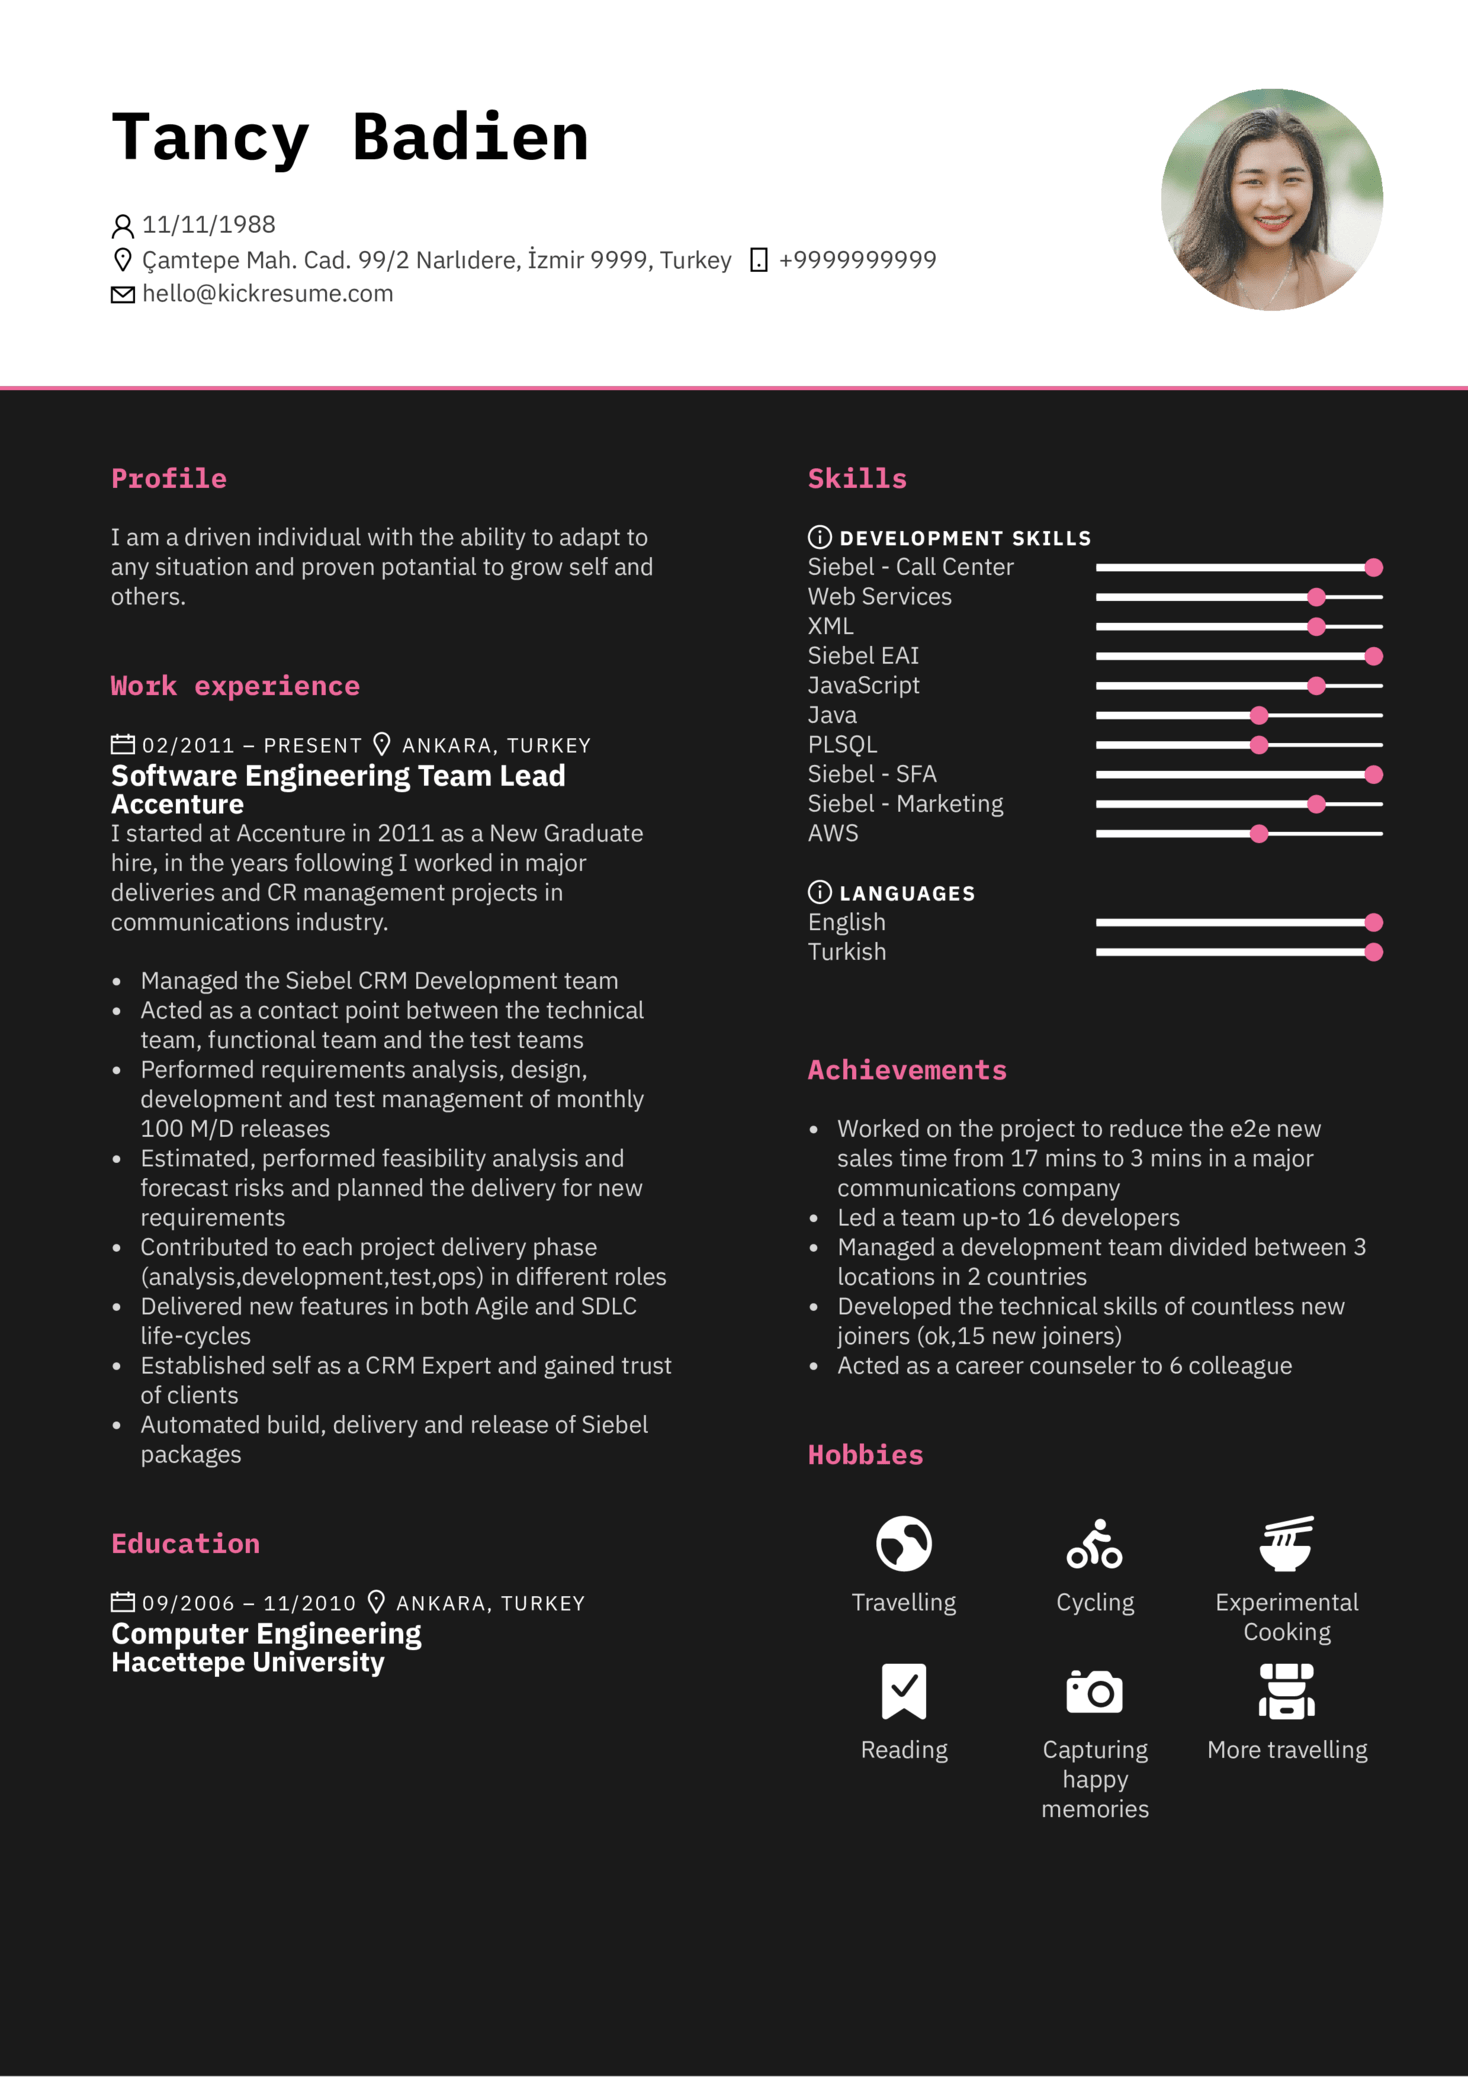 Accenture Oftware Engineering Team Lead Resume Sample